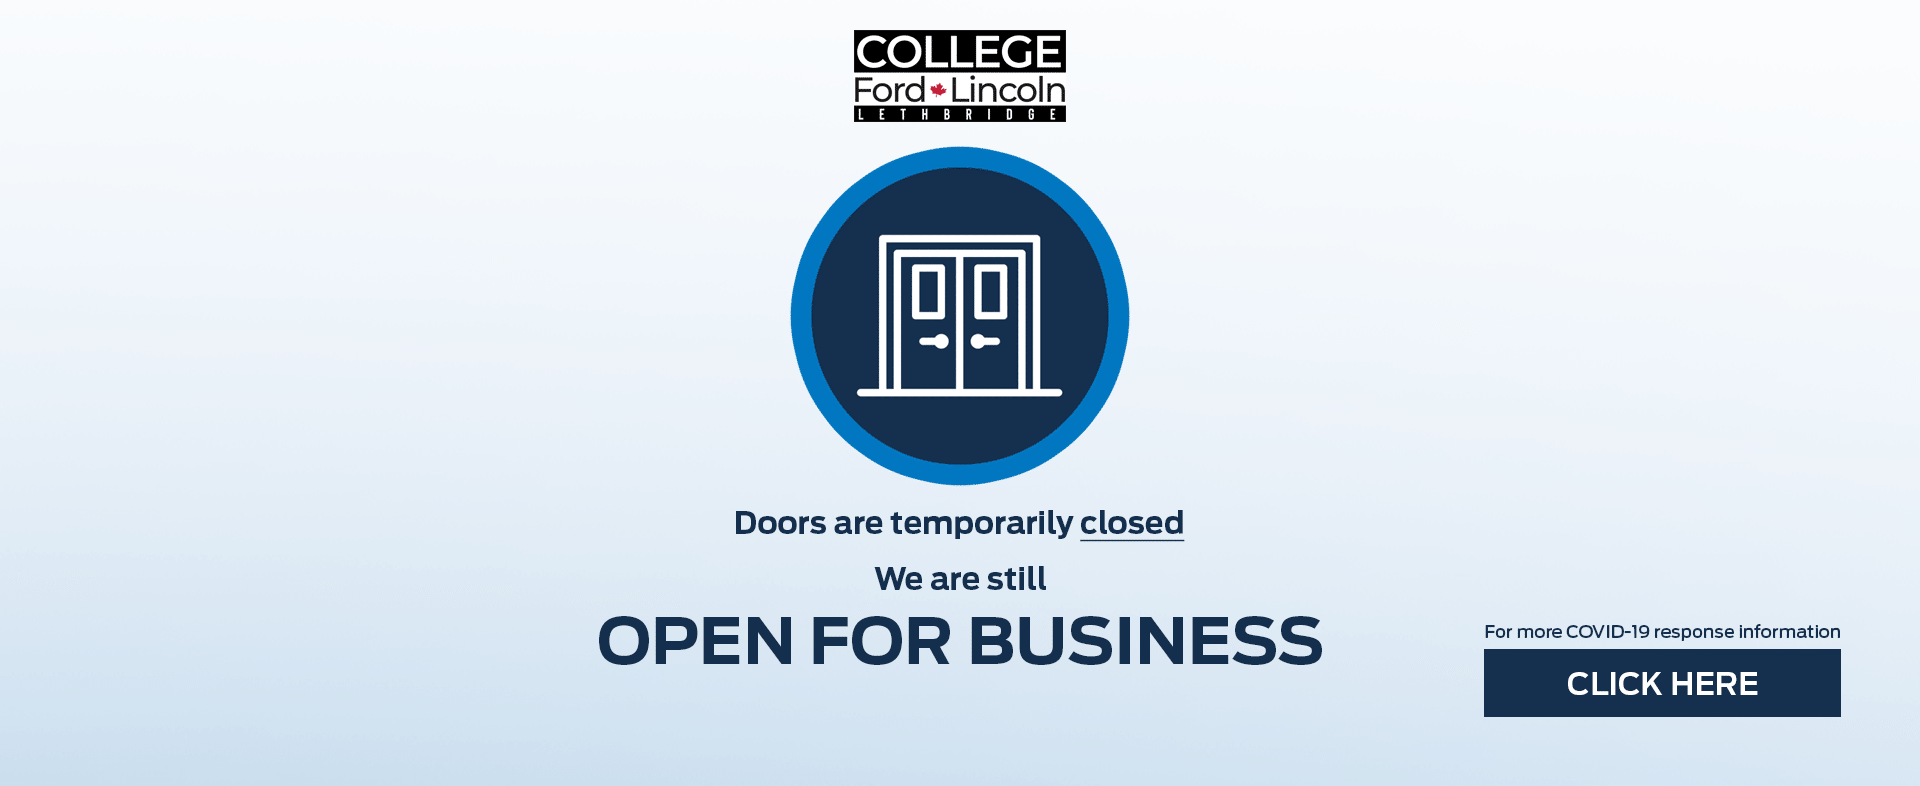 College Ford Lincoln Doors Closed, Business Open